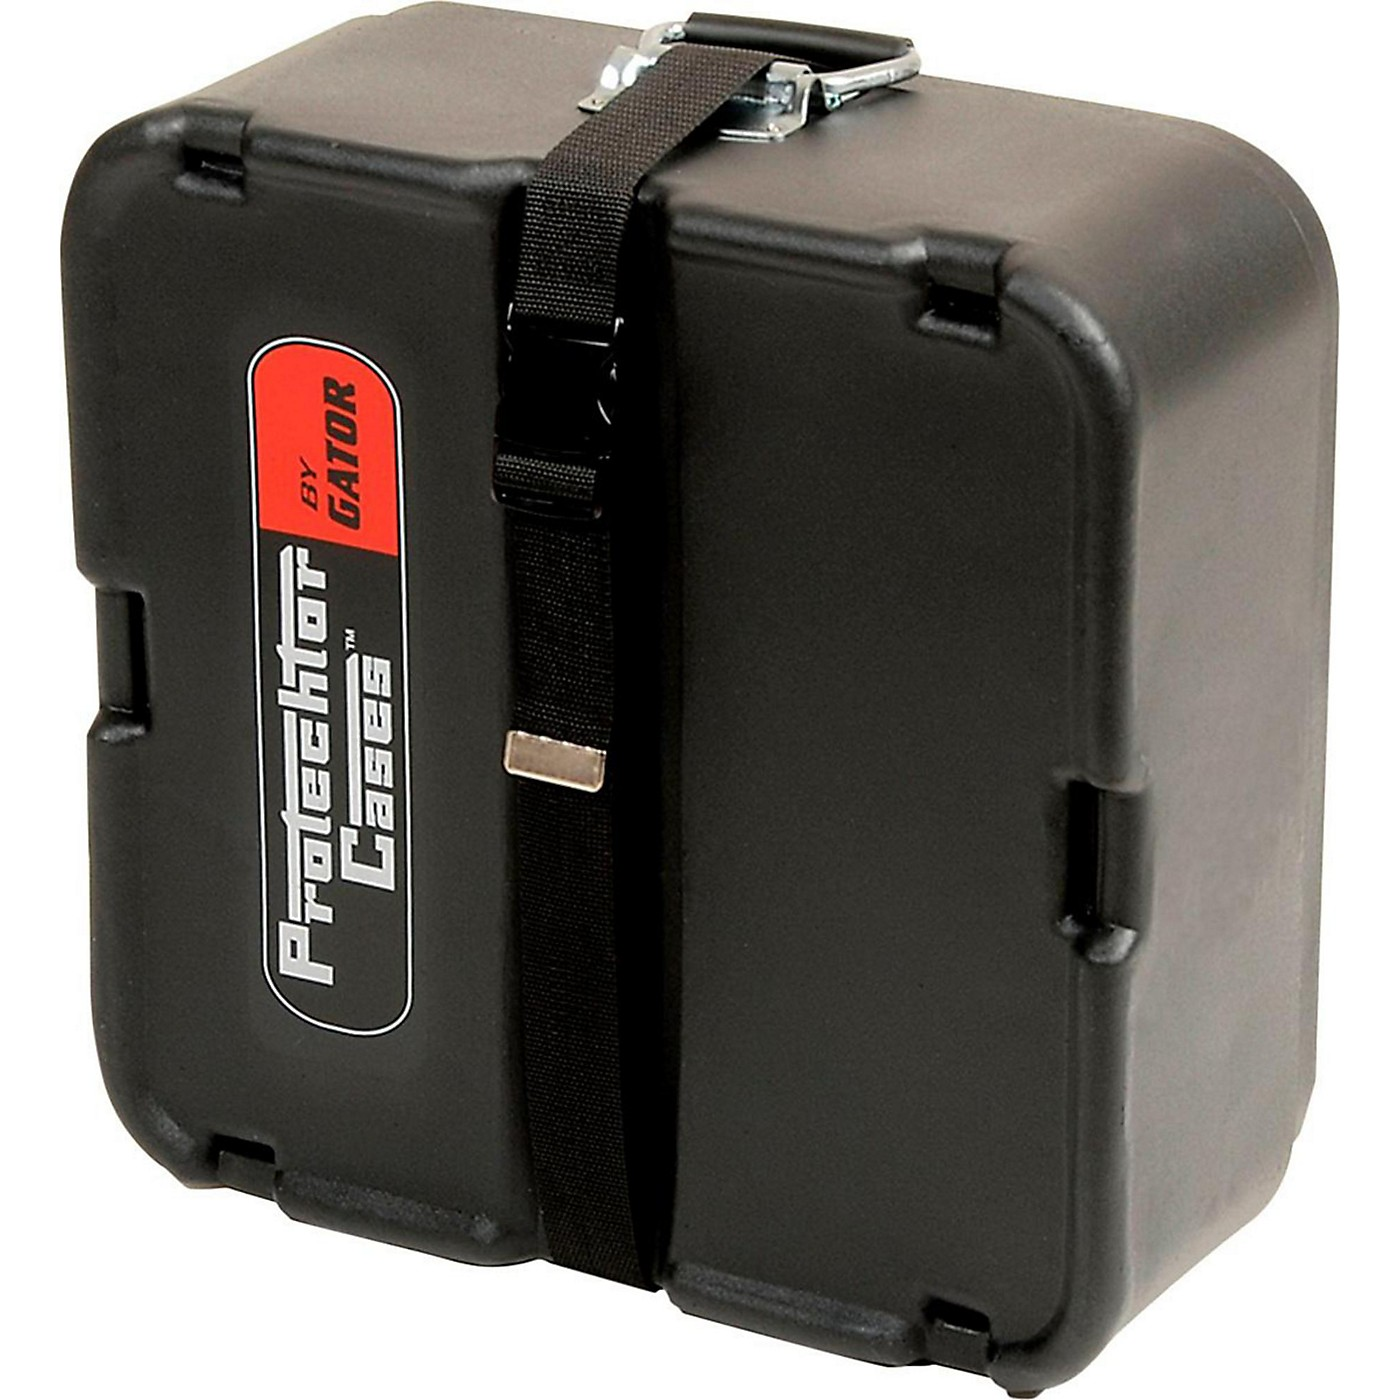 Protechtor Cases Protechtor Classic Snare Drum Case thumbnail